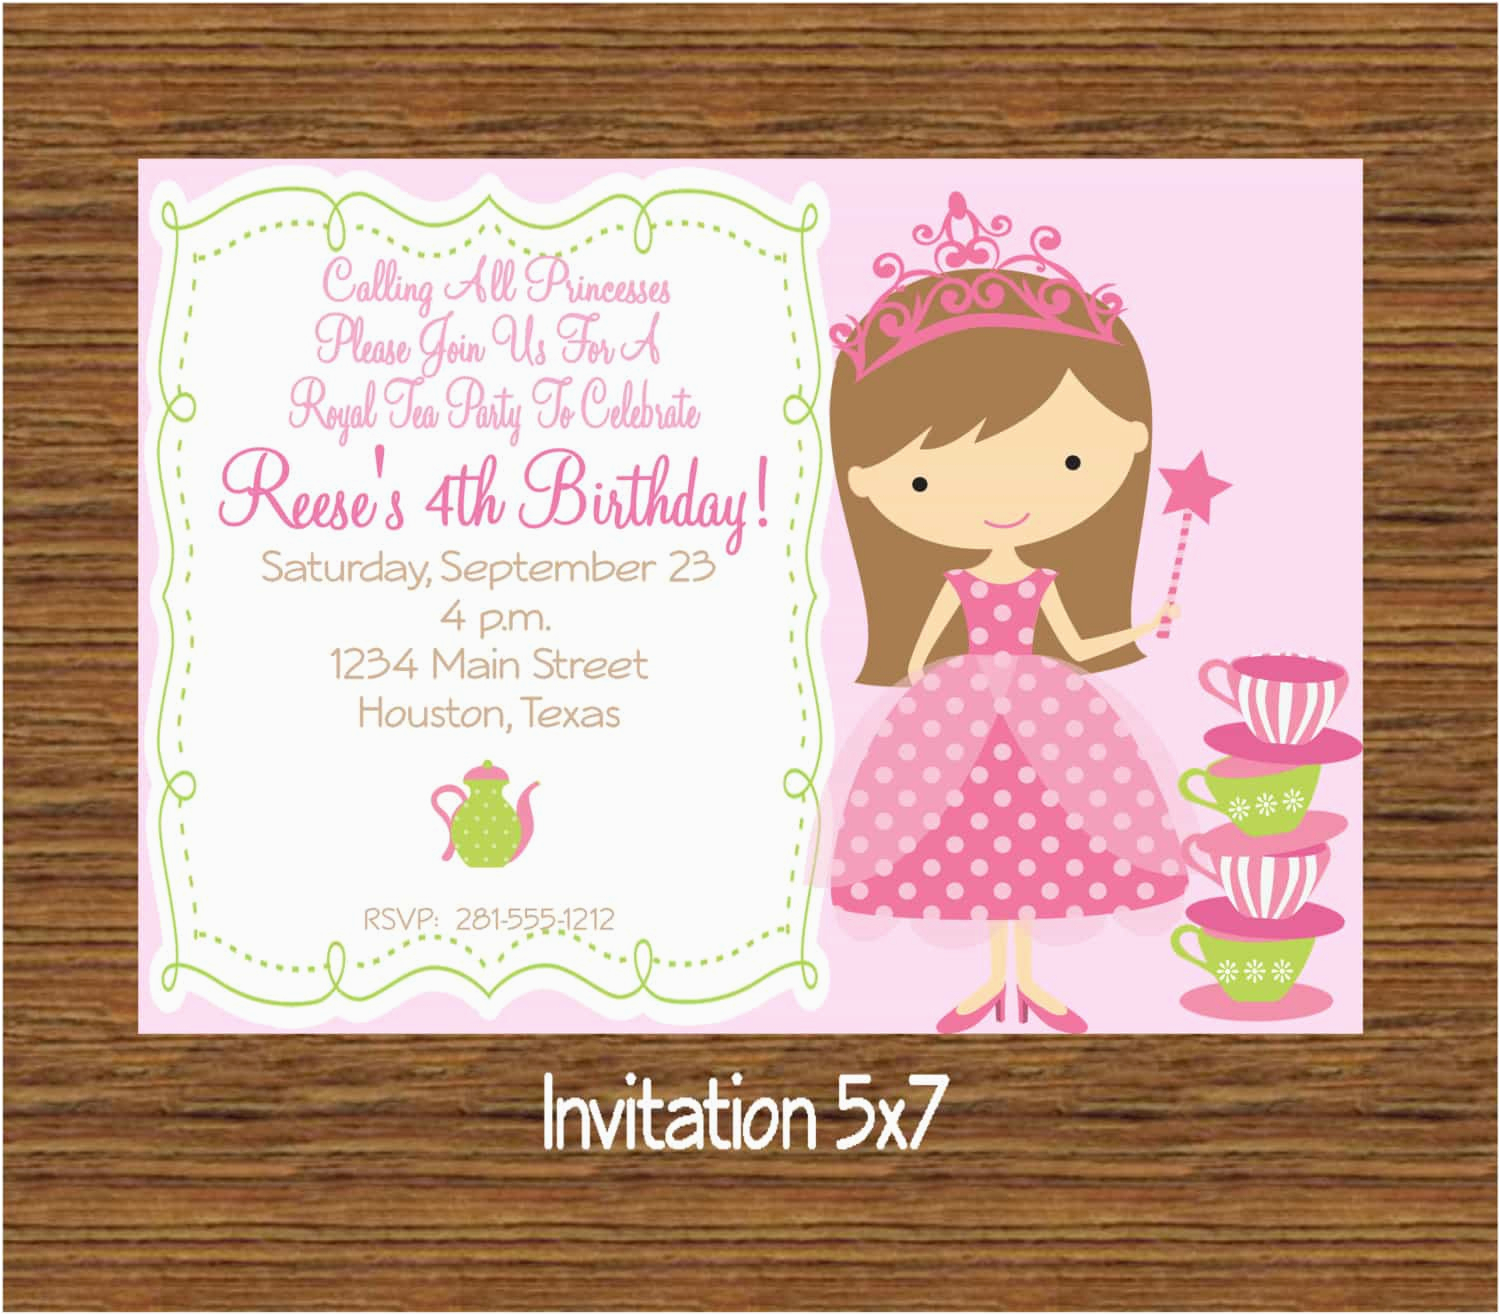 E Invitation For Birthday Party Create Own Tea Invitations Free Egreeting